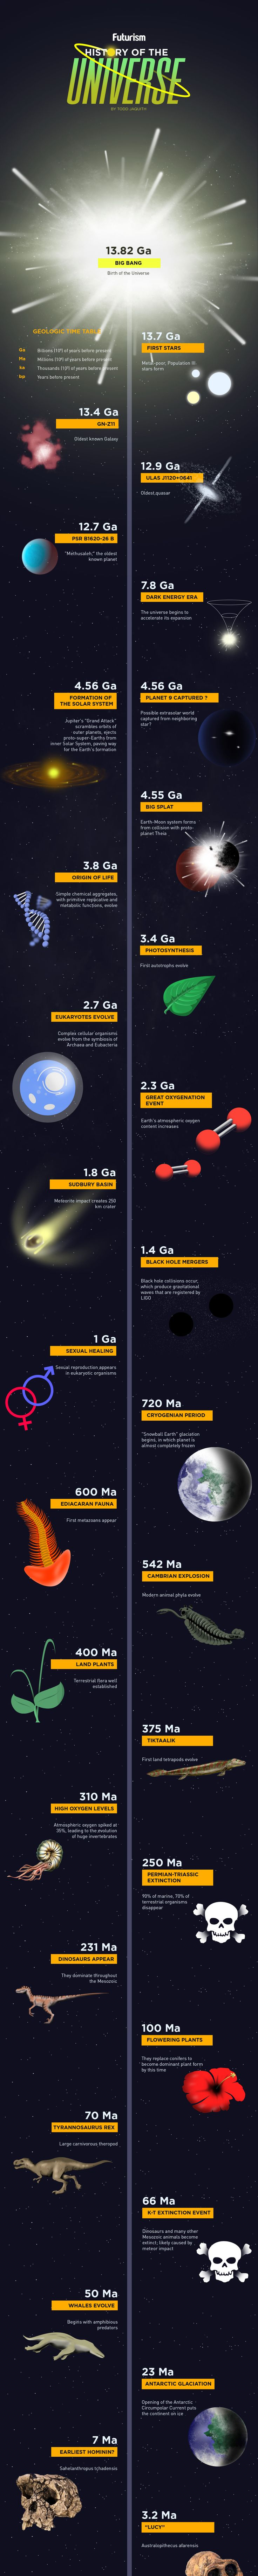 The History Of The Universe [Infographic] The Universe has undergone so much…